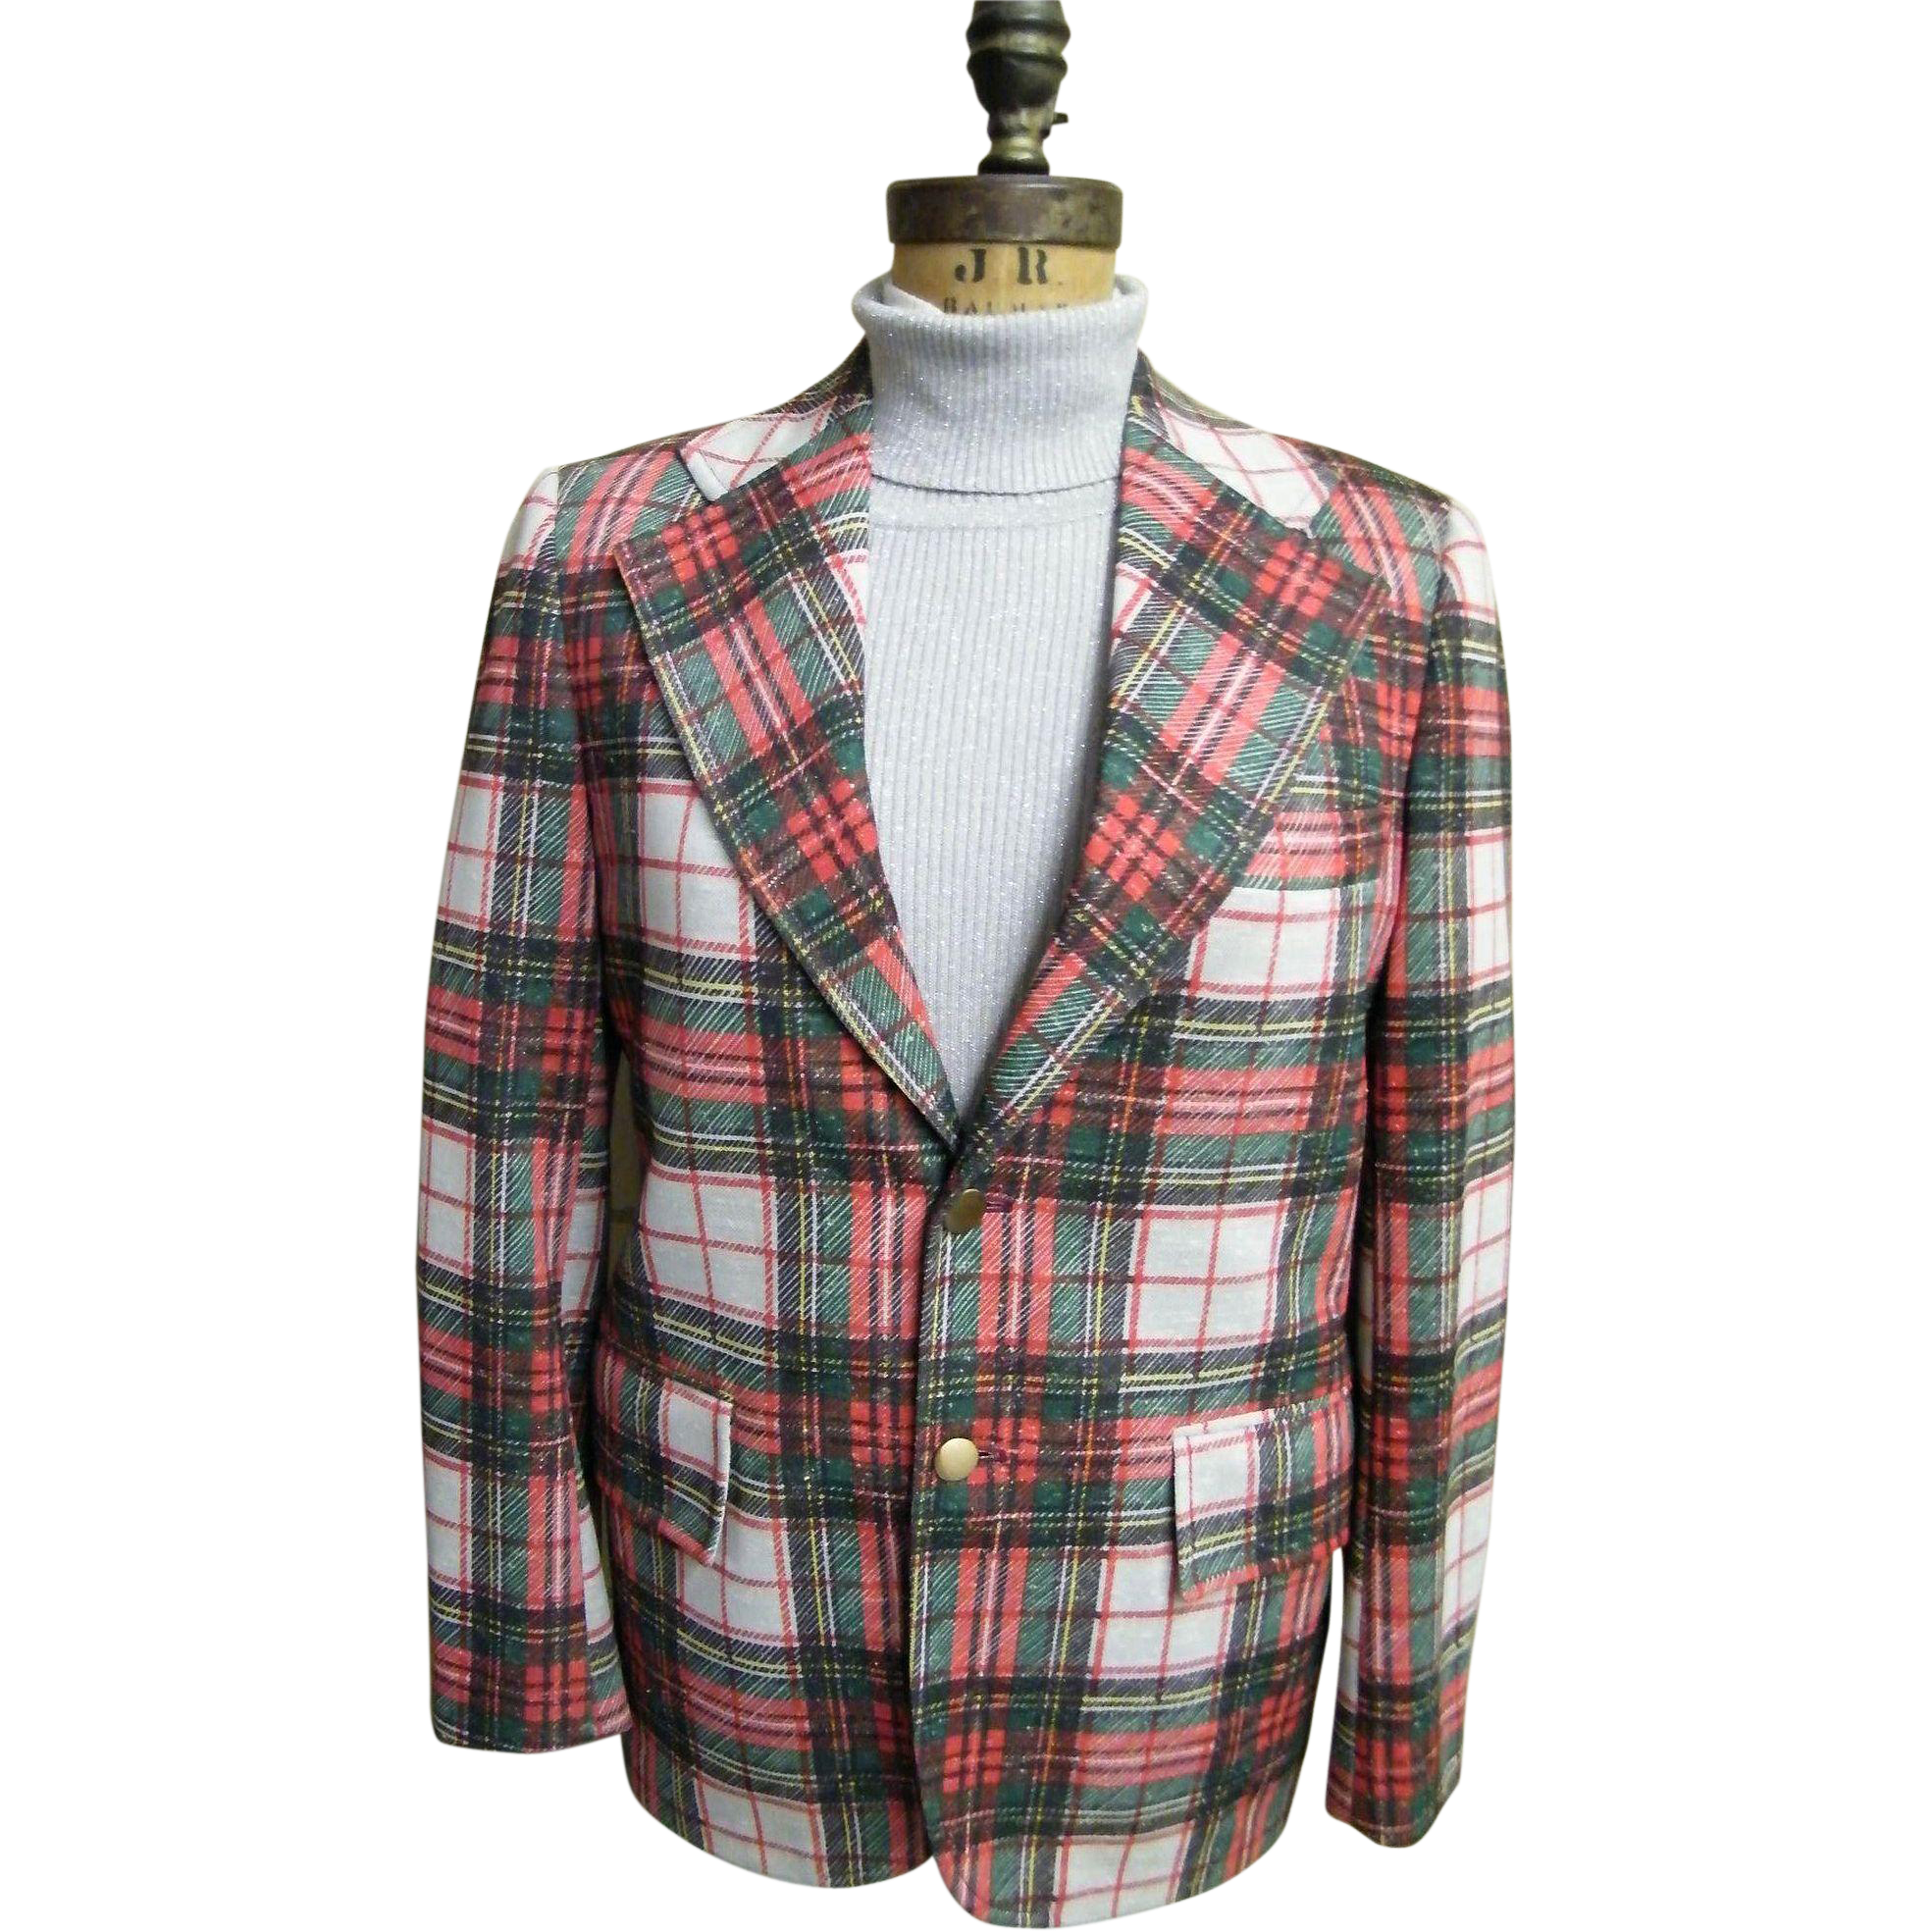 Men's Tartan Plaid Polyester Double Knit Sports Coat / Jacket..1960's - 70's..Excellent Condition!